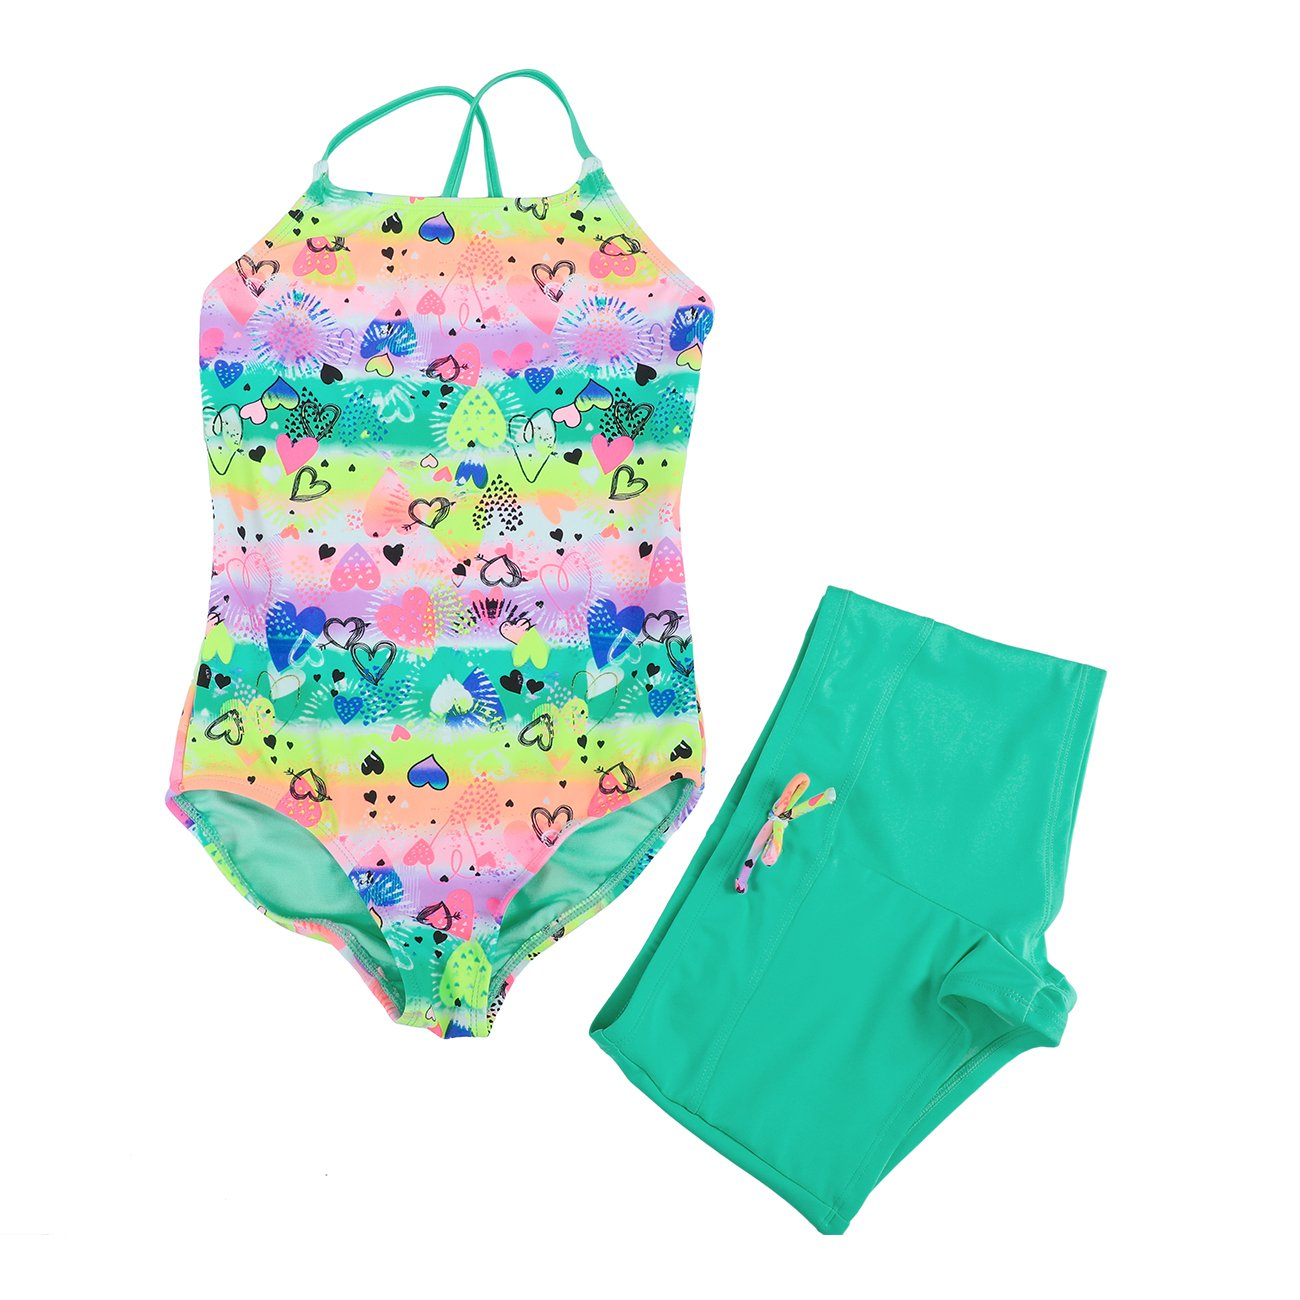 DAYU Girls Swimwear 3-Piece UV Protection Swim Set Small Squid Swimsuit Bikini Swimsuit -6-14